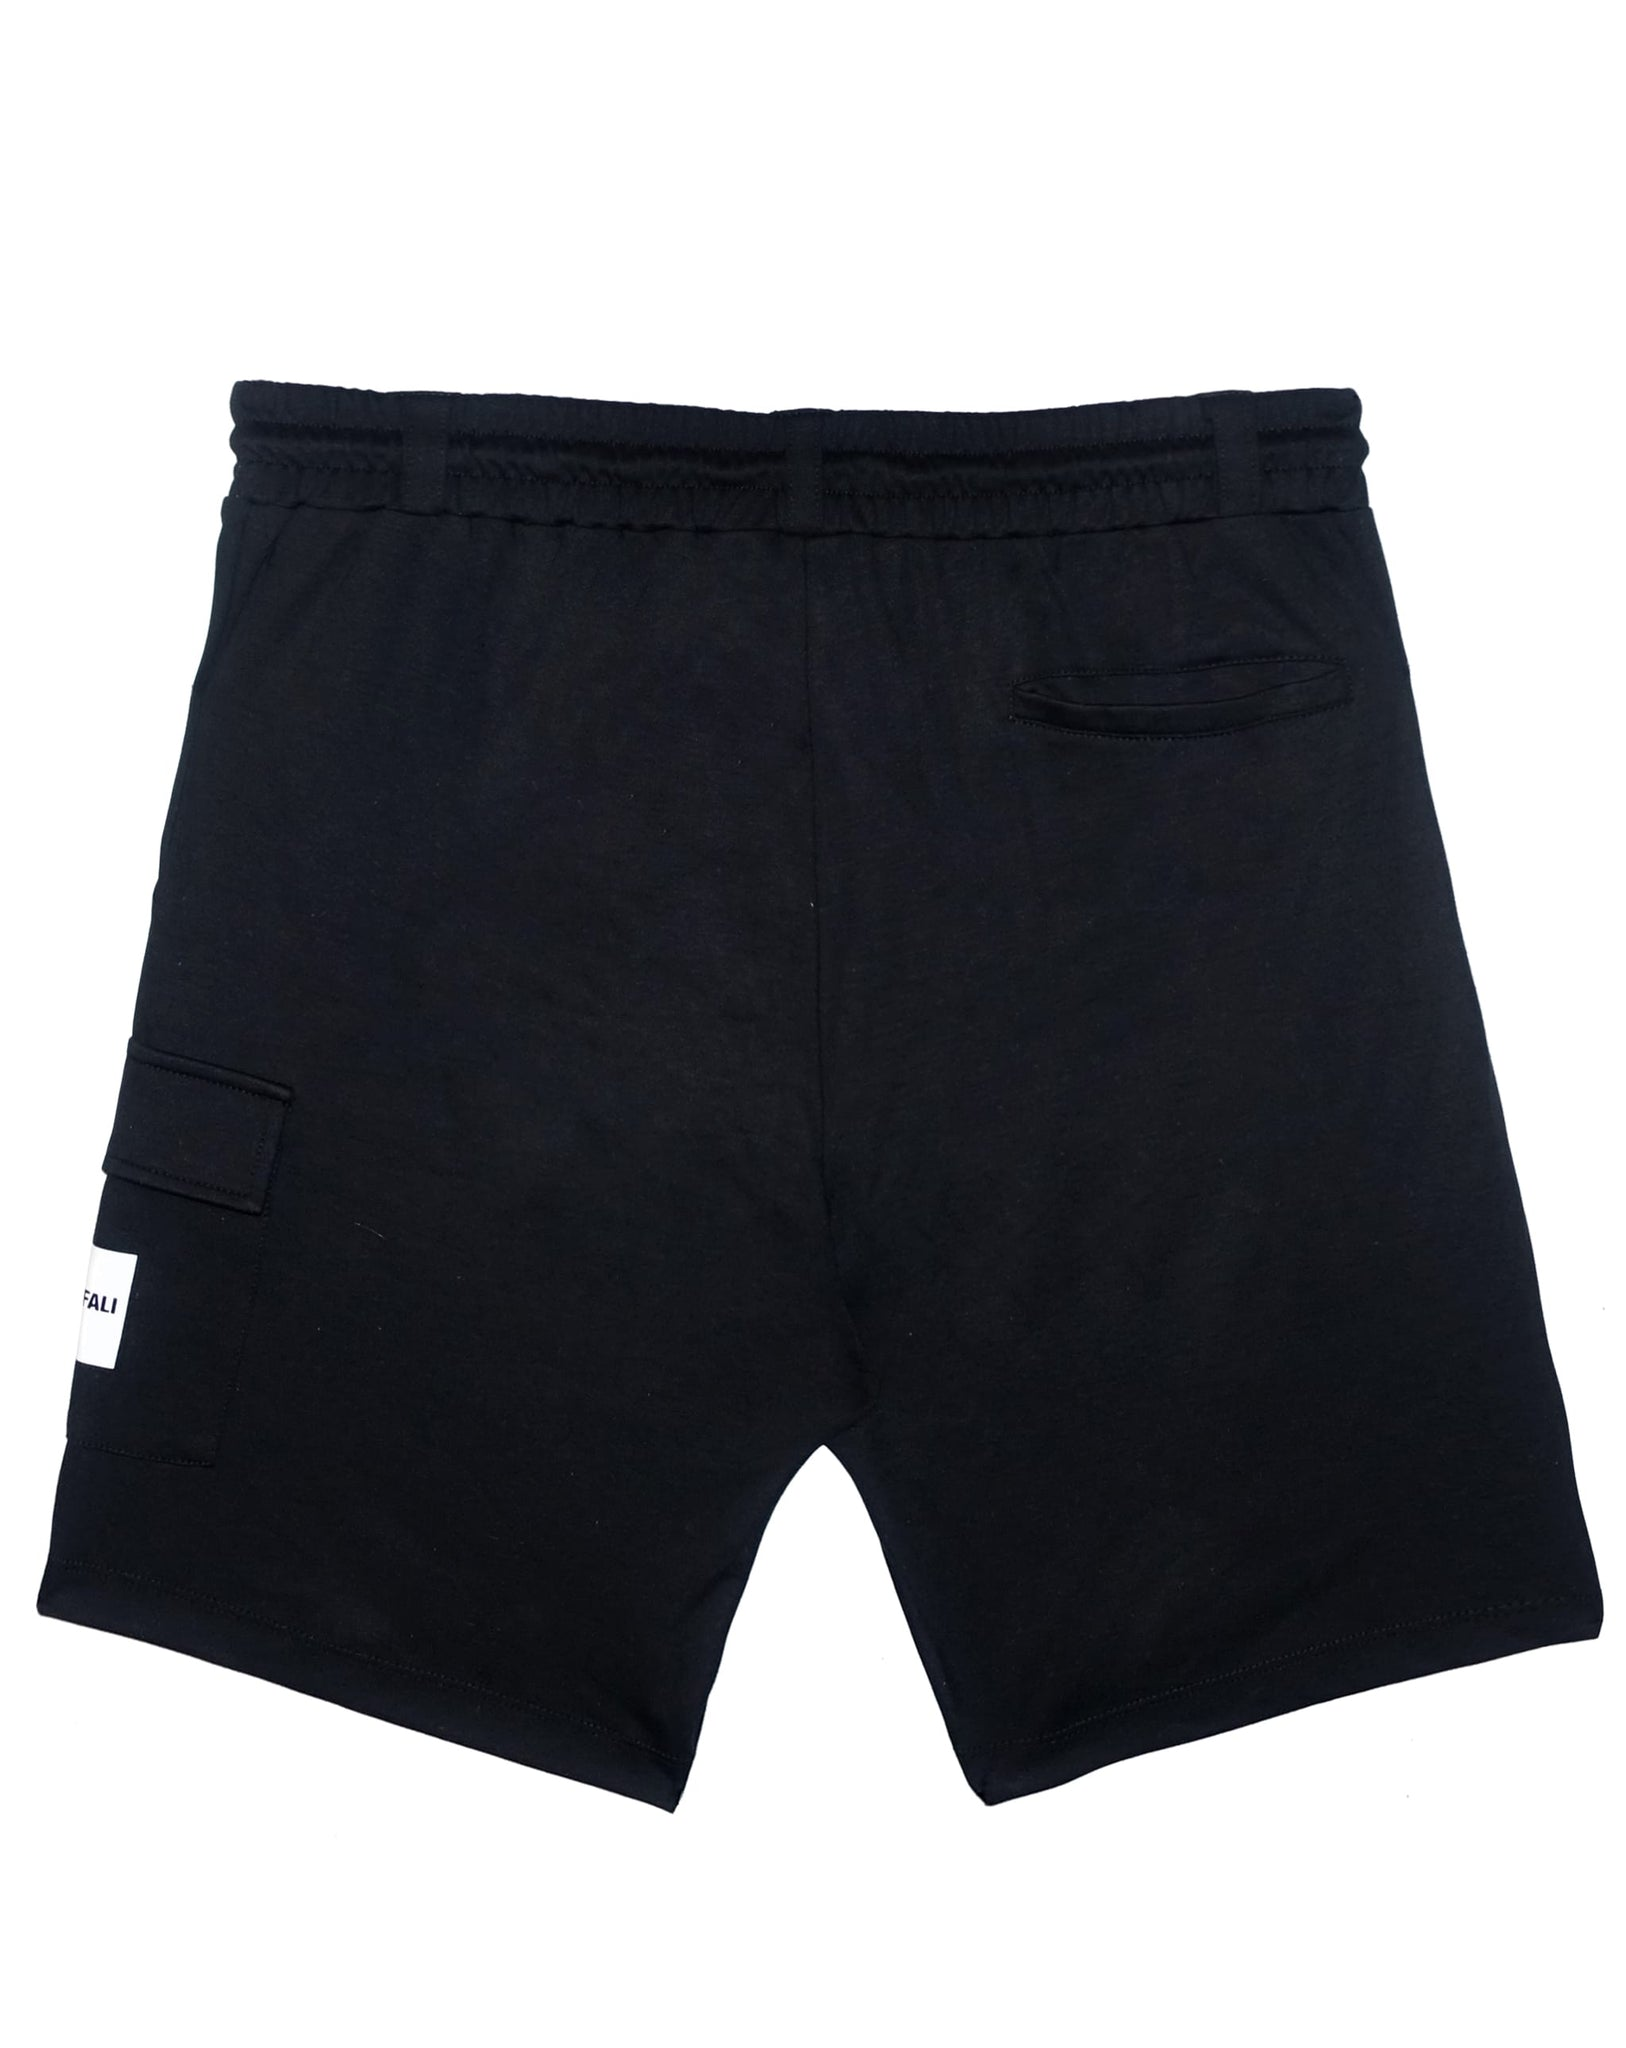 Square Logo Lifestyle Short